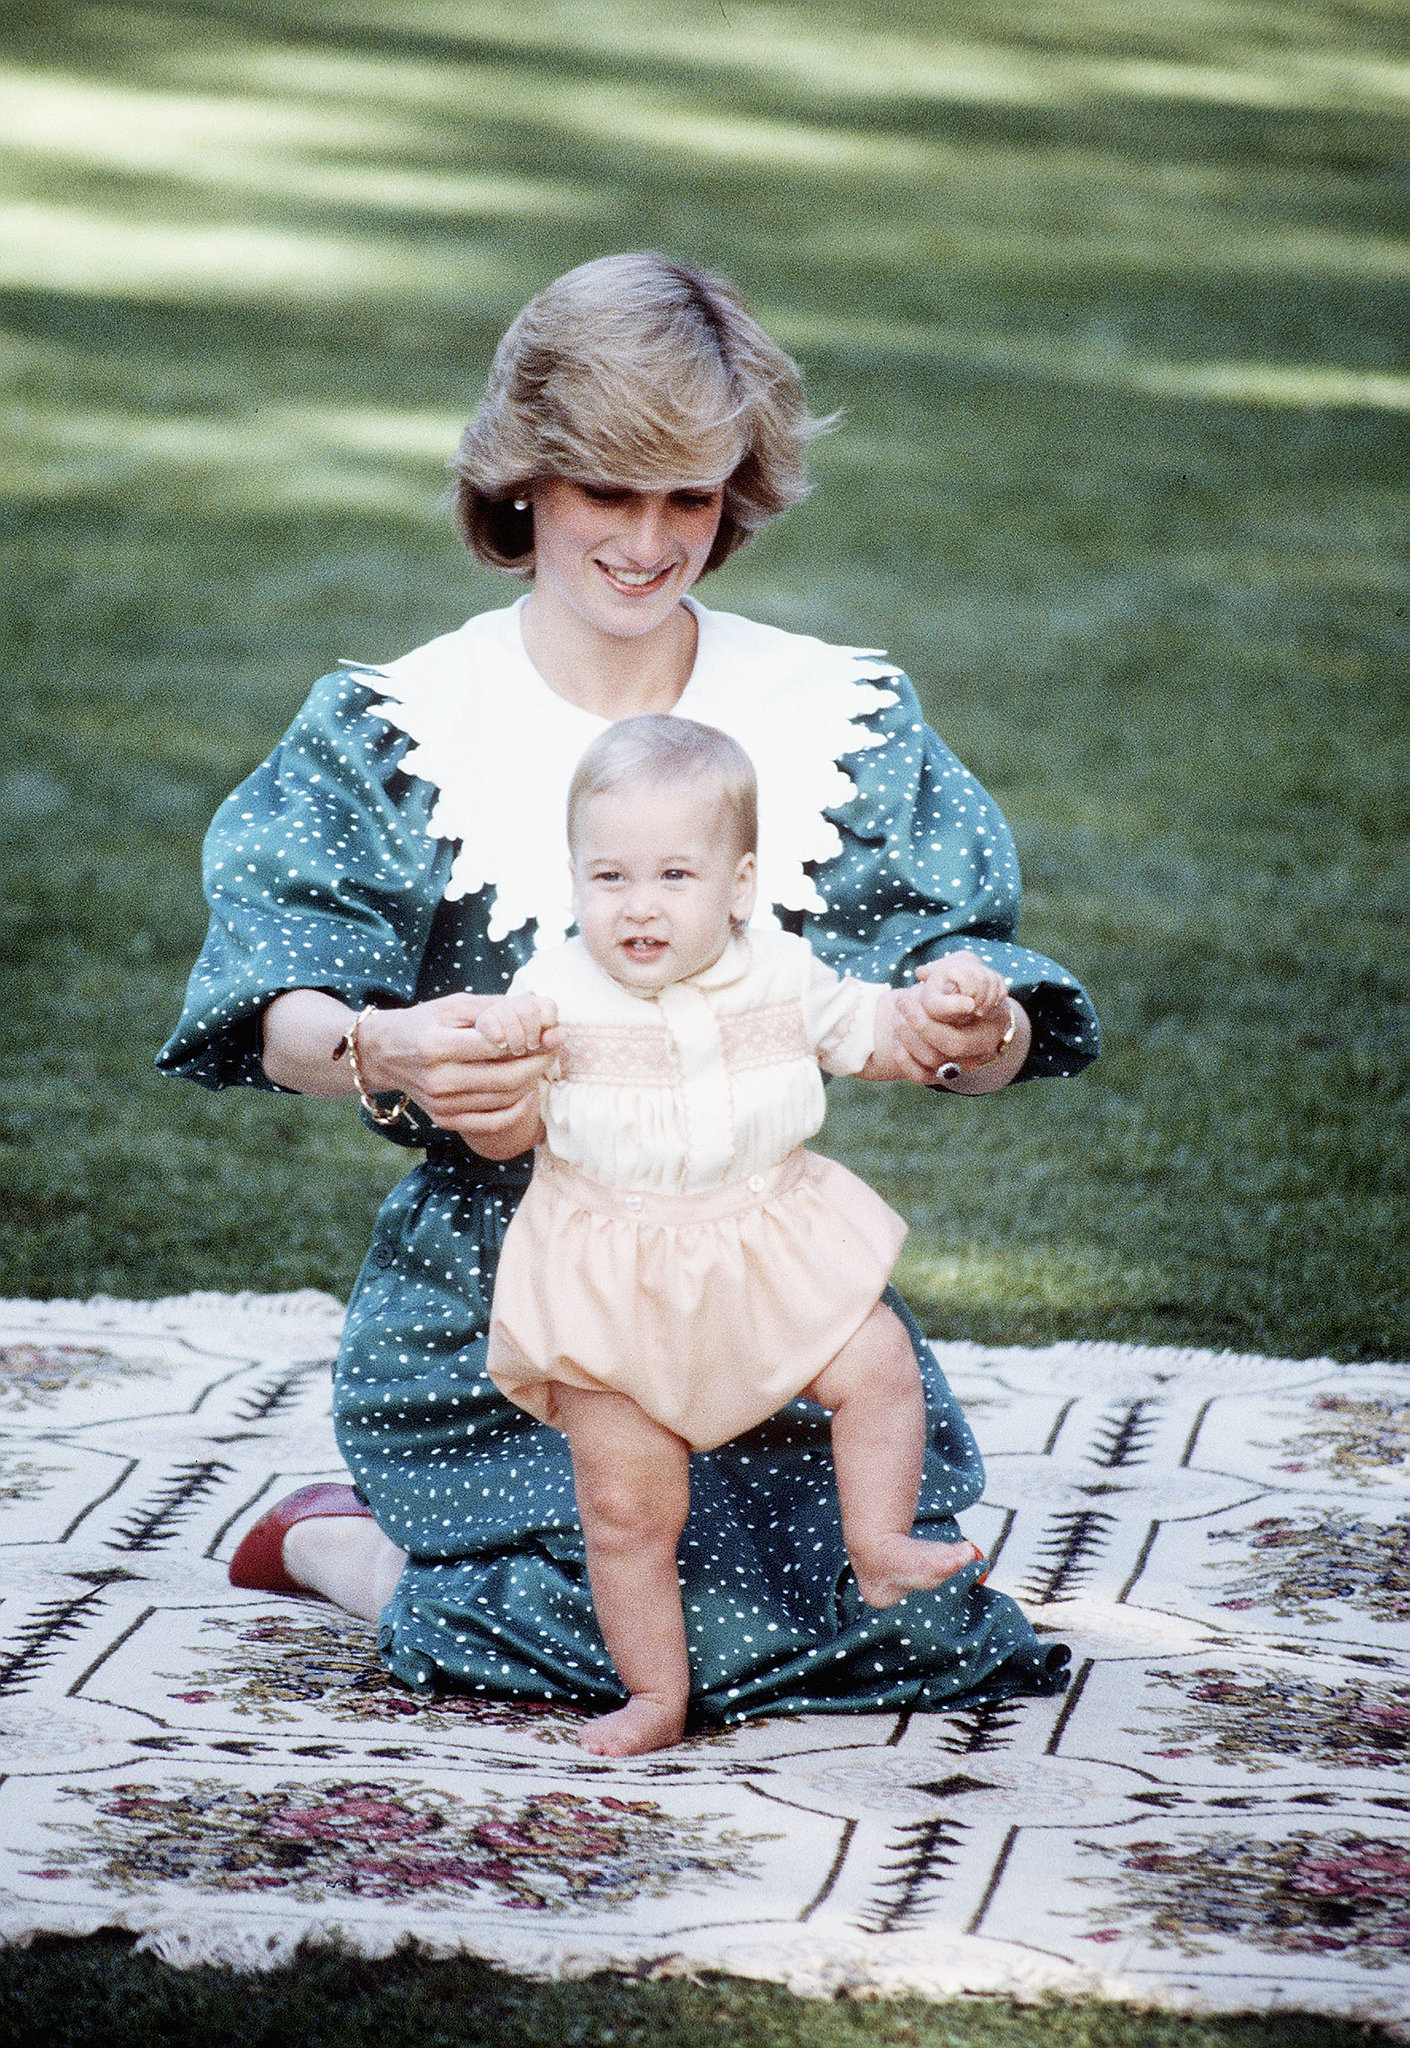 In April 1983, Princess Diana played with an adorable Prince William while in Auckland, New Zealand.